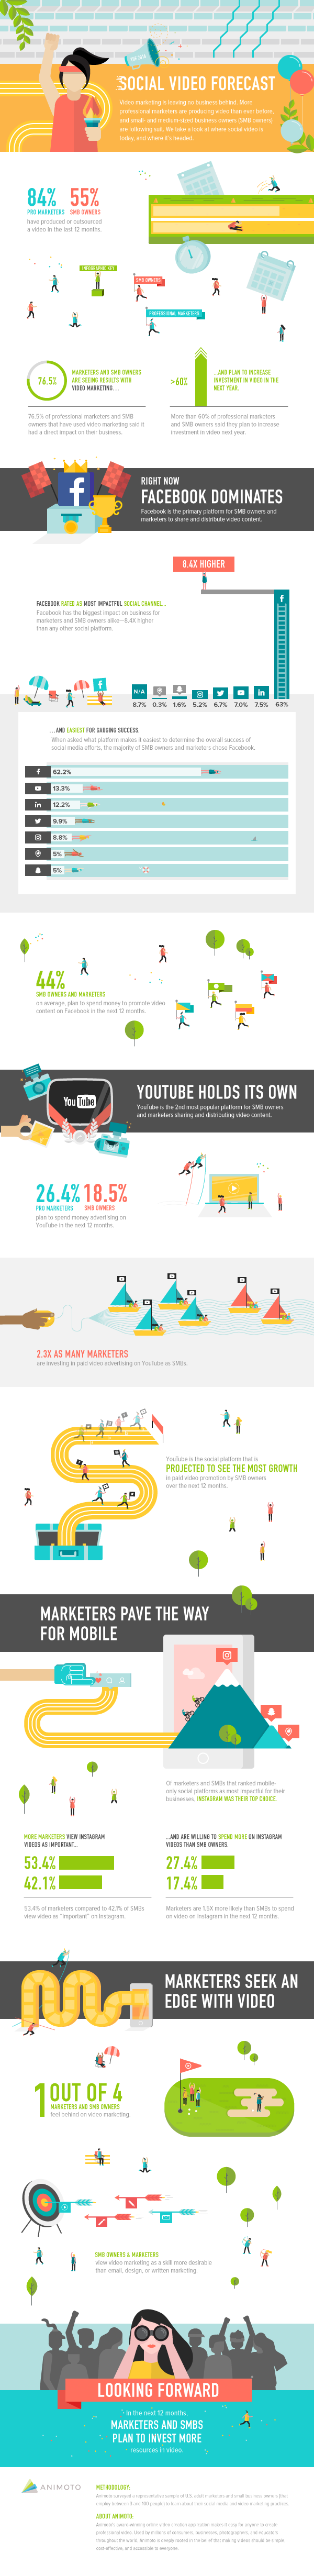 social video - hoe passen organisaties dit toe infographic